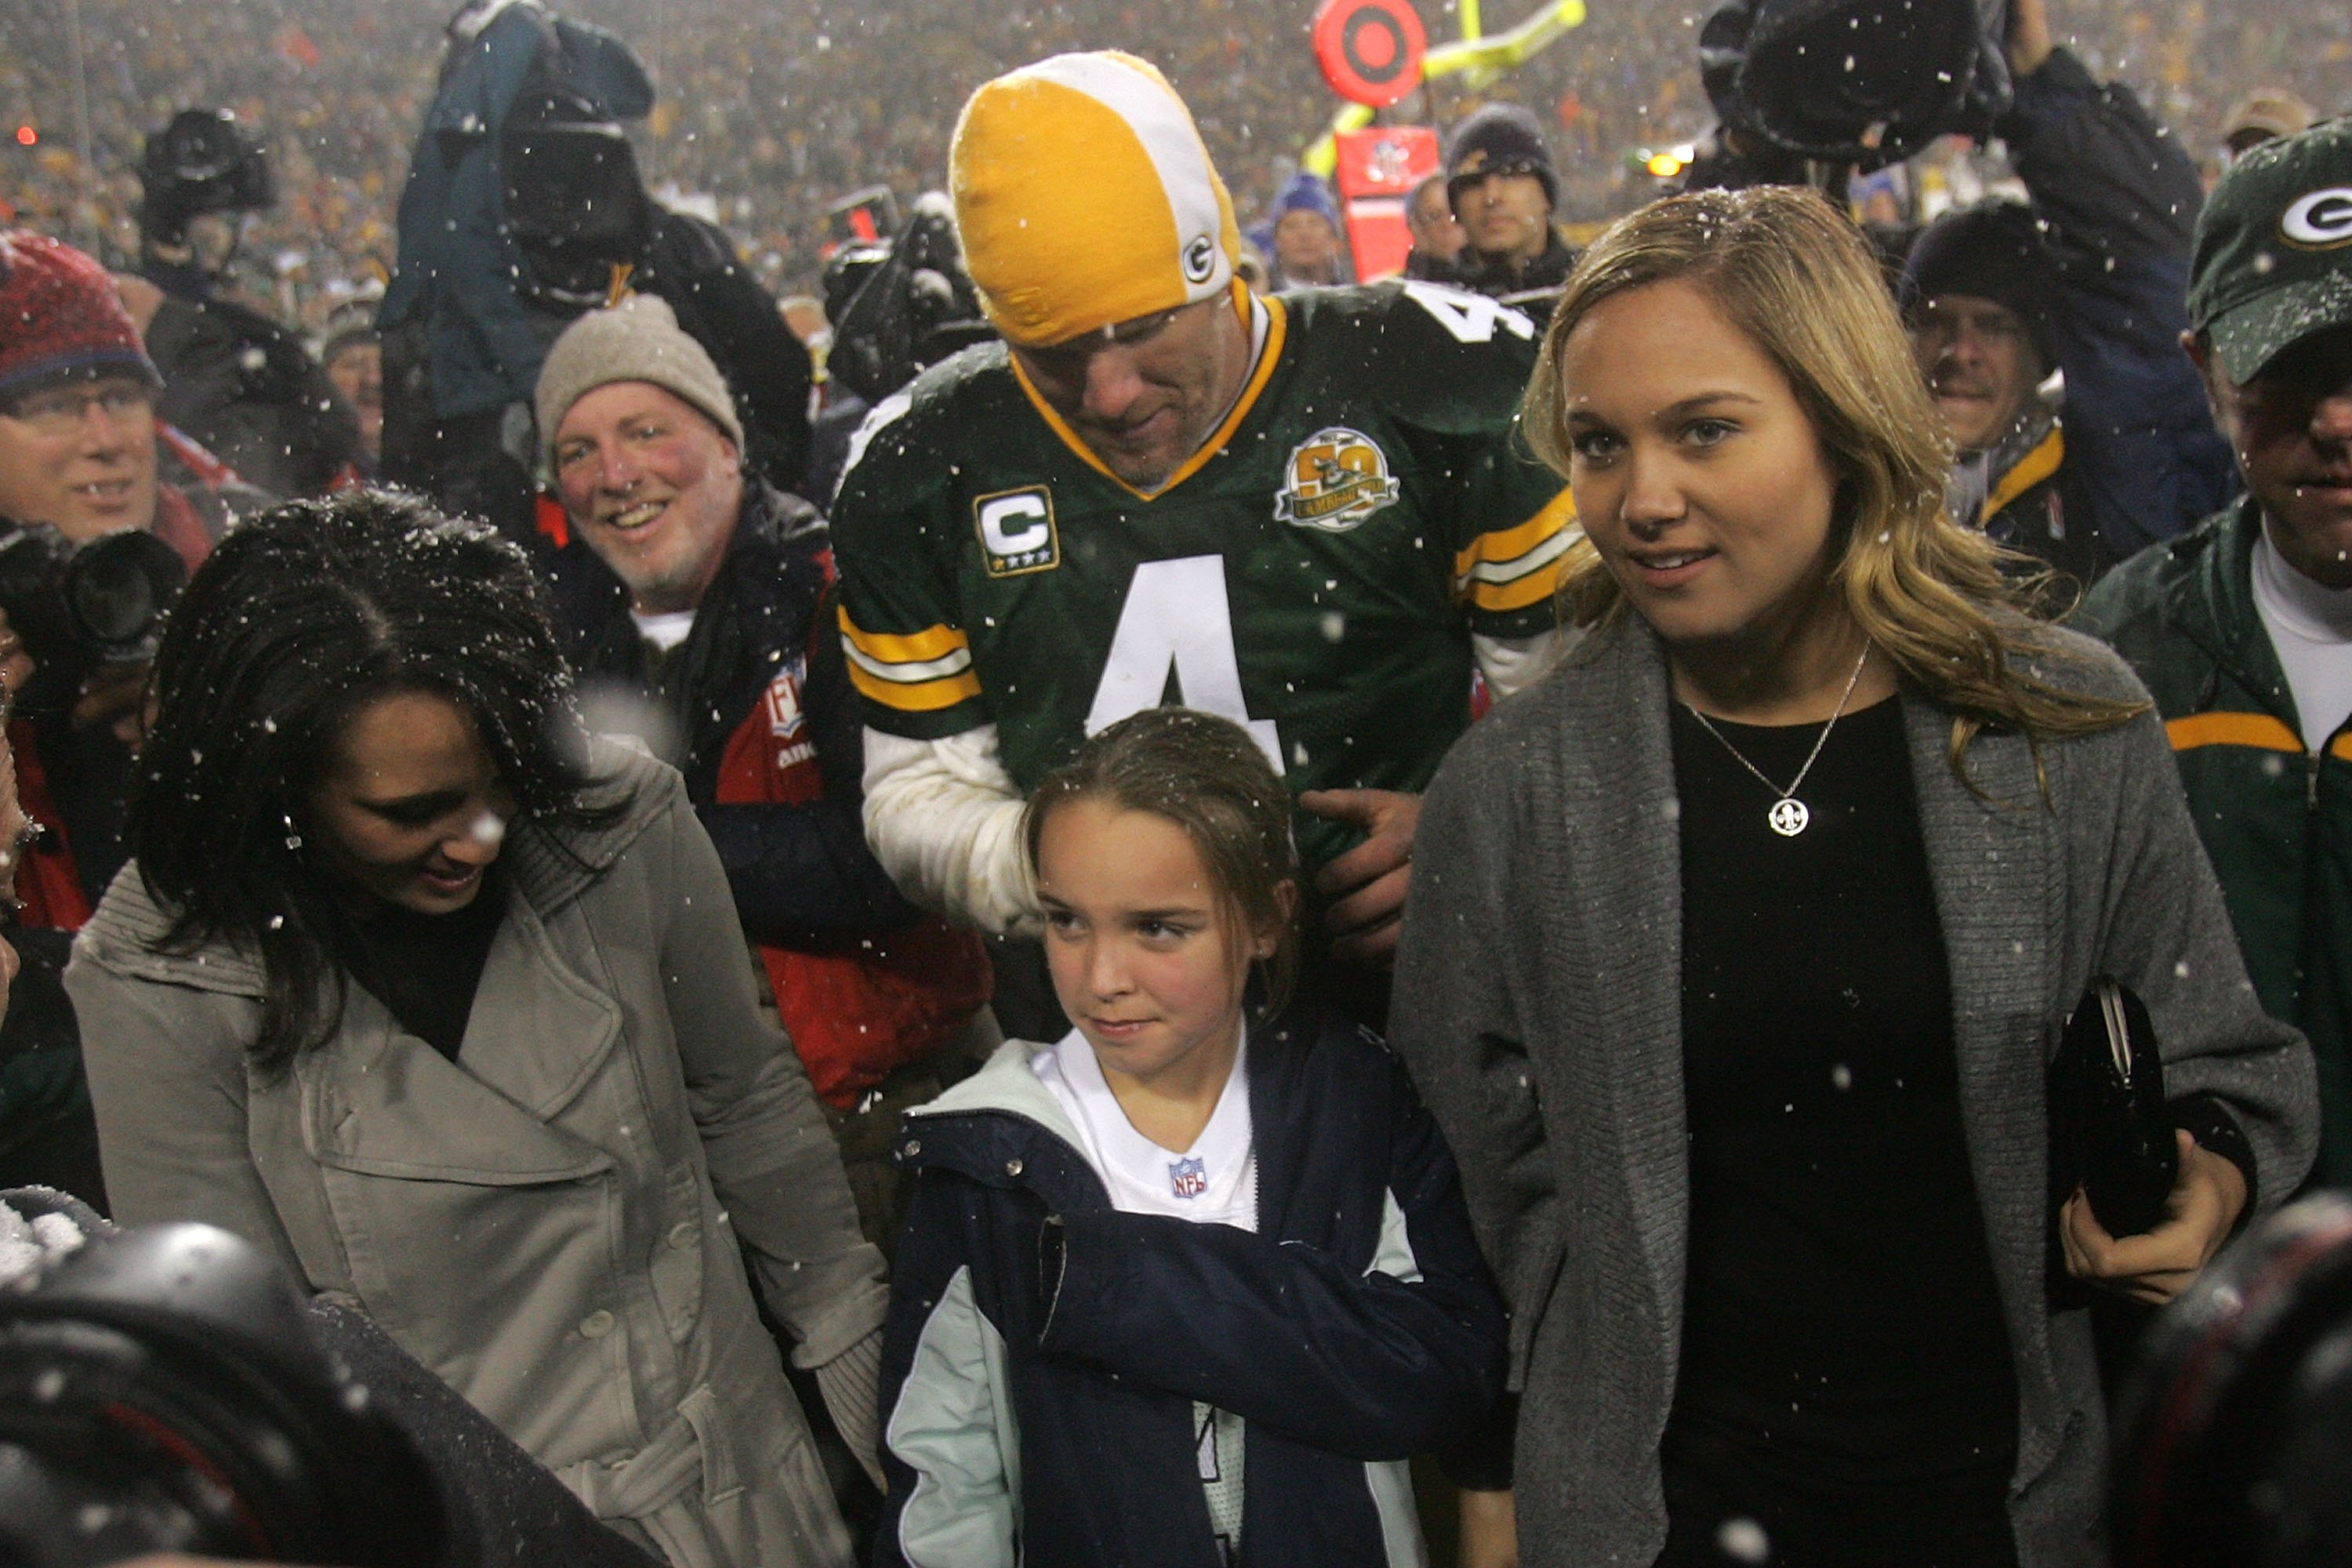 GREEN BAY, WI - JANUARY 12:  Quarterback Brett Favre #4 of the Green Bay Packers walks off the field with his wife Deanna and daughters (R) Brittany and (M) Breleigh after the Packers defeated the Seattle Seahawks 42-20 after the NFC divisional playoff ga